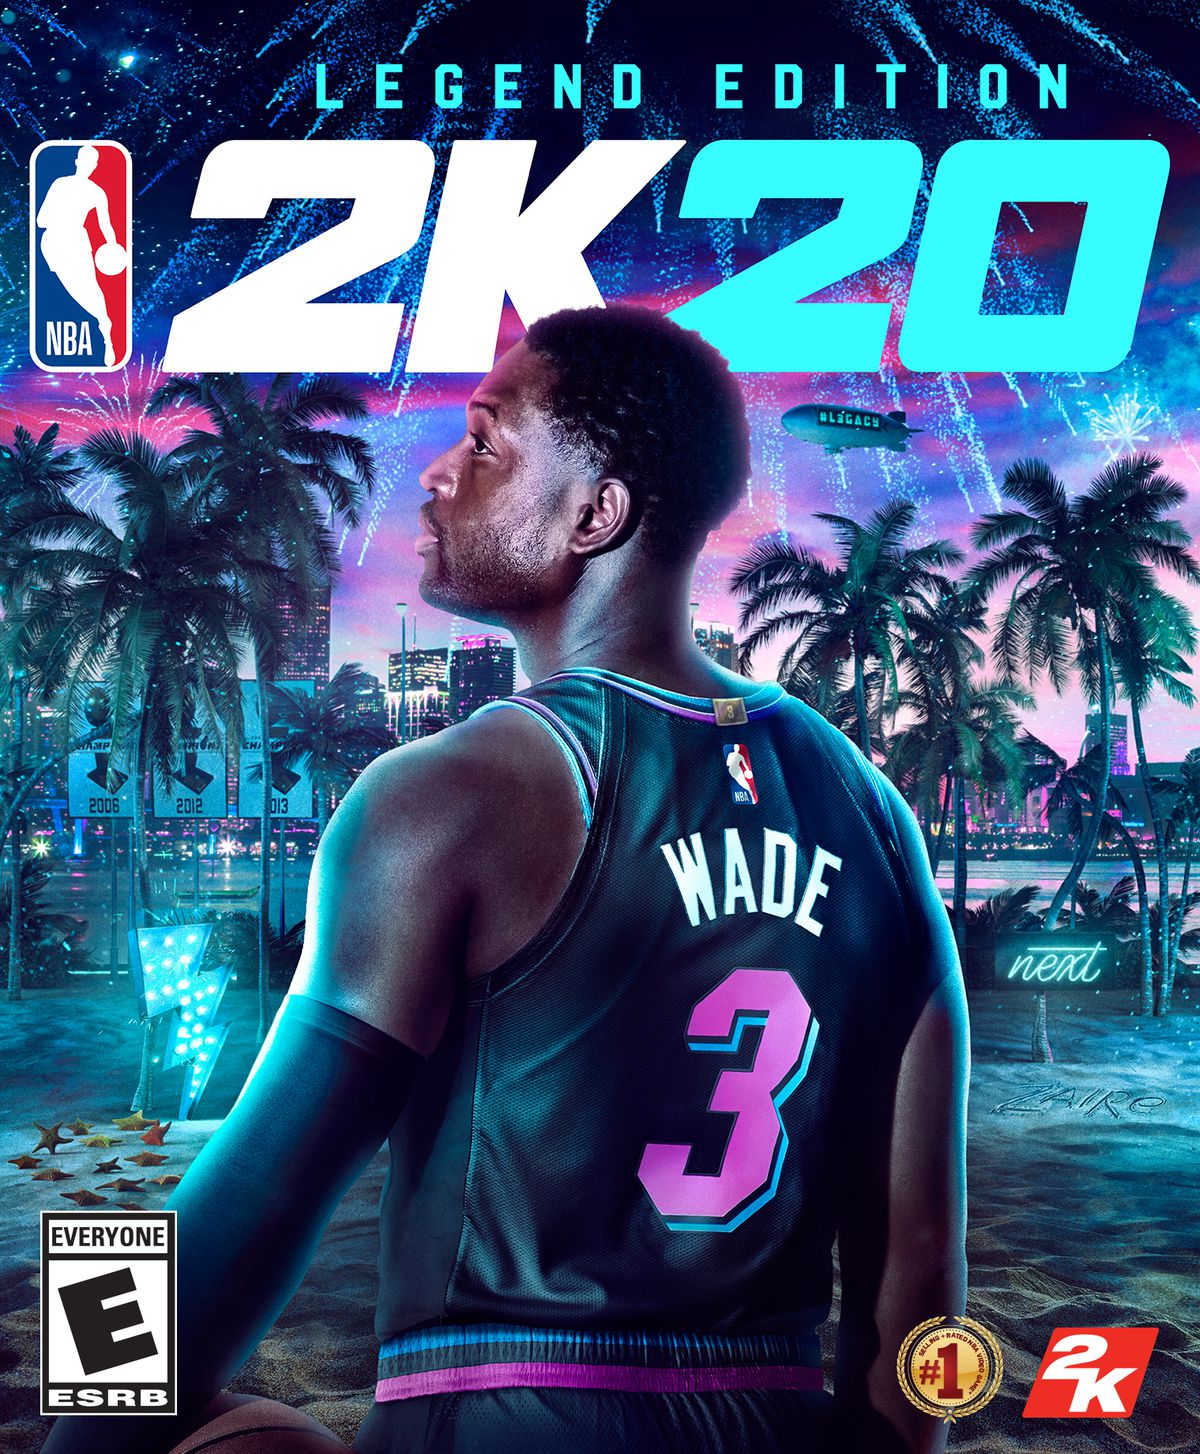 NBA 2K20 Legend Edition cover art featuring Dwyane Wade's back